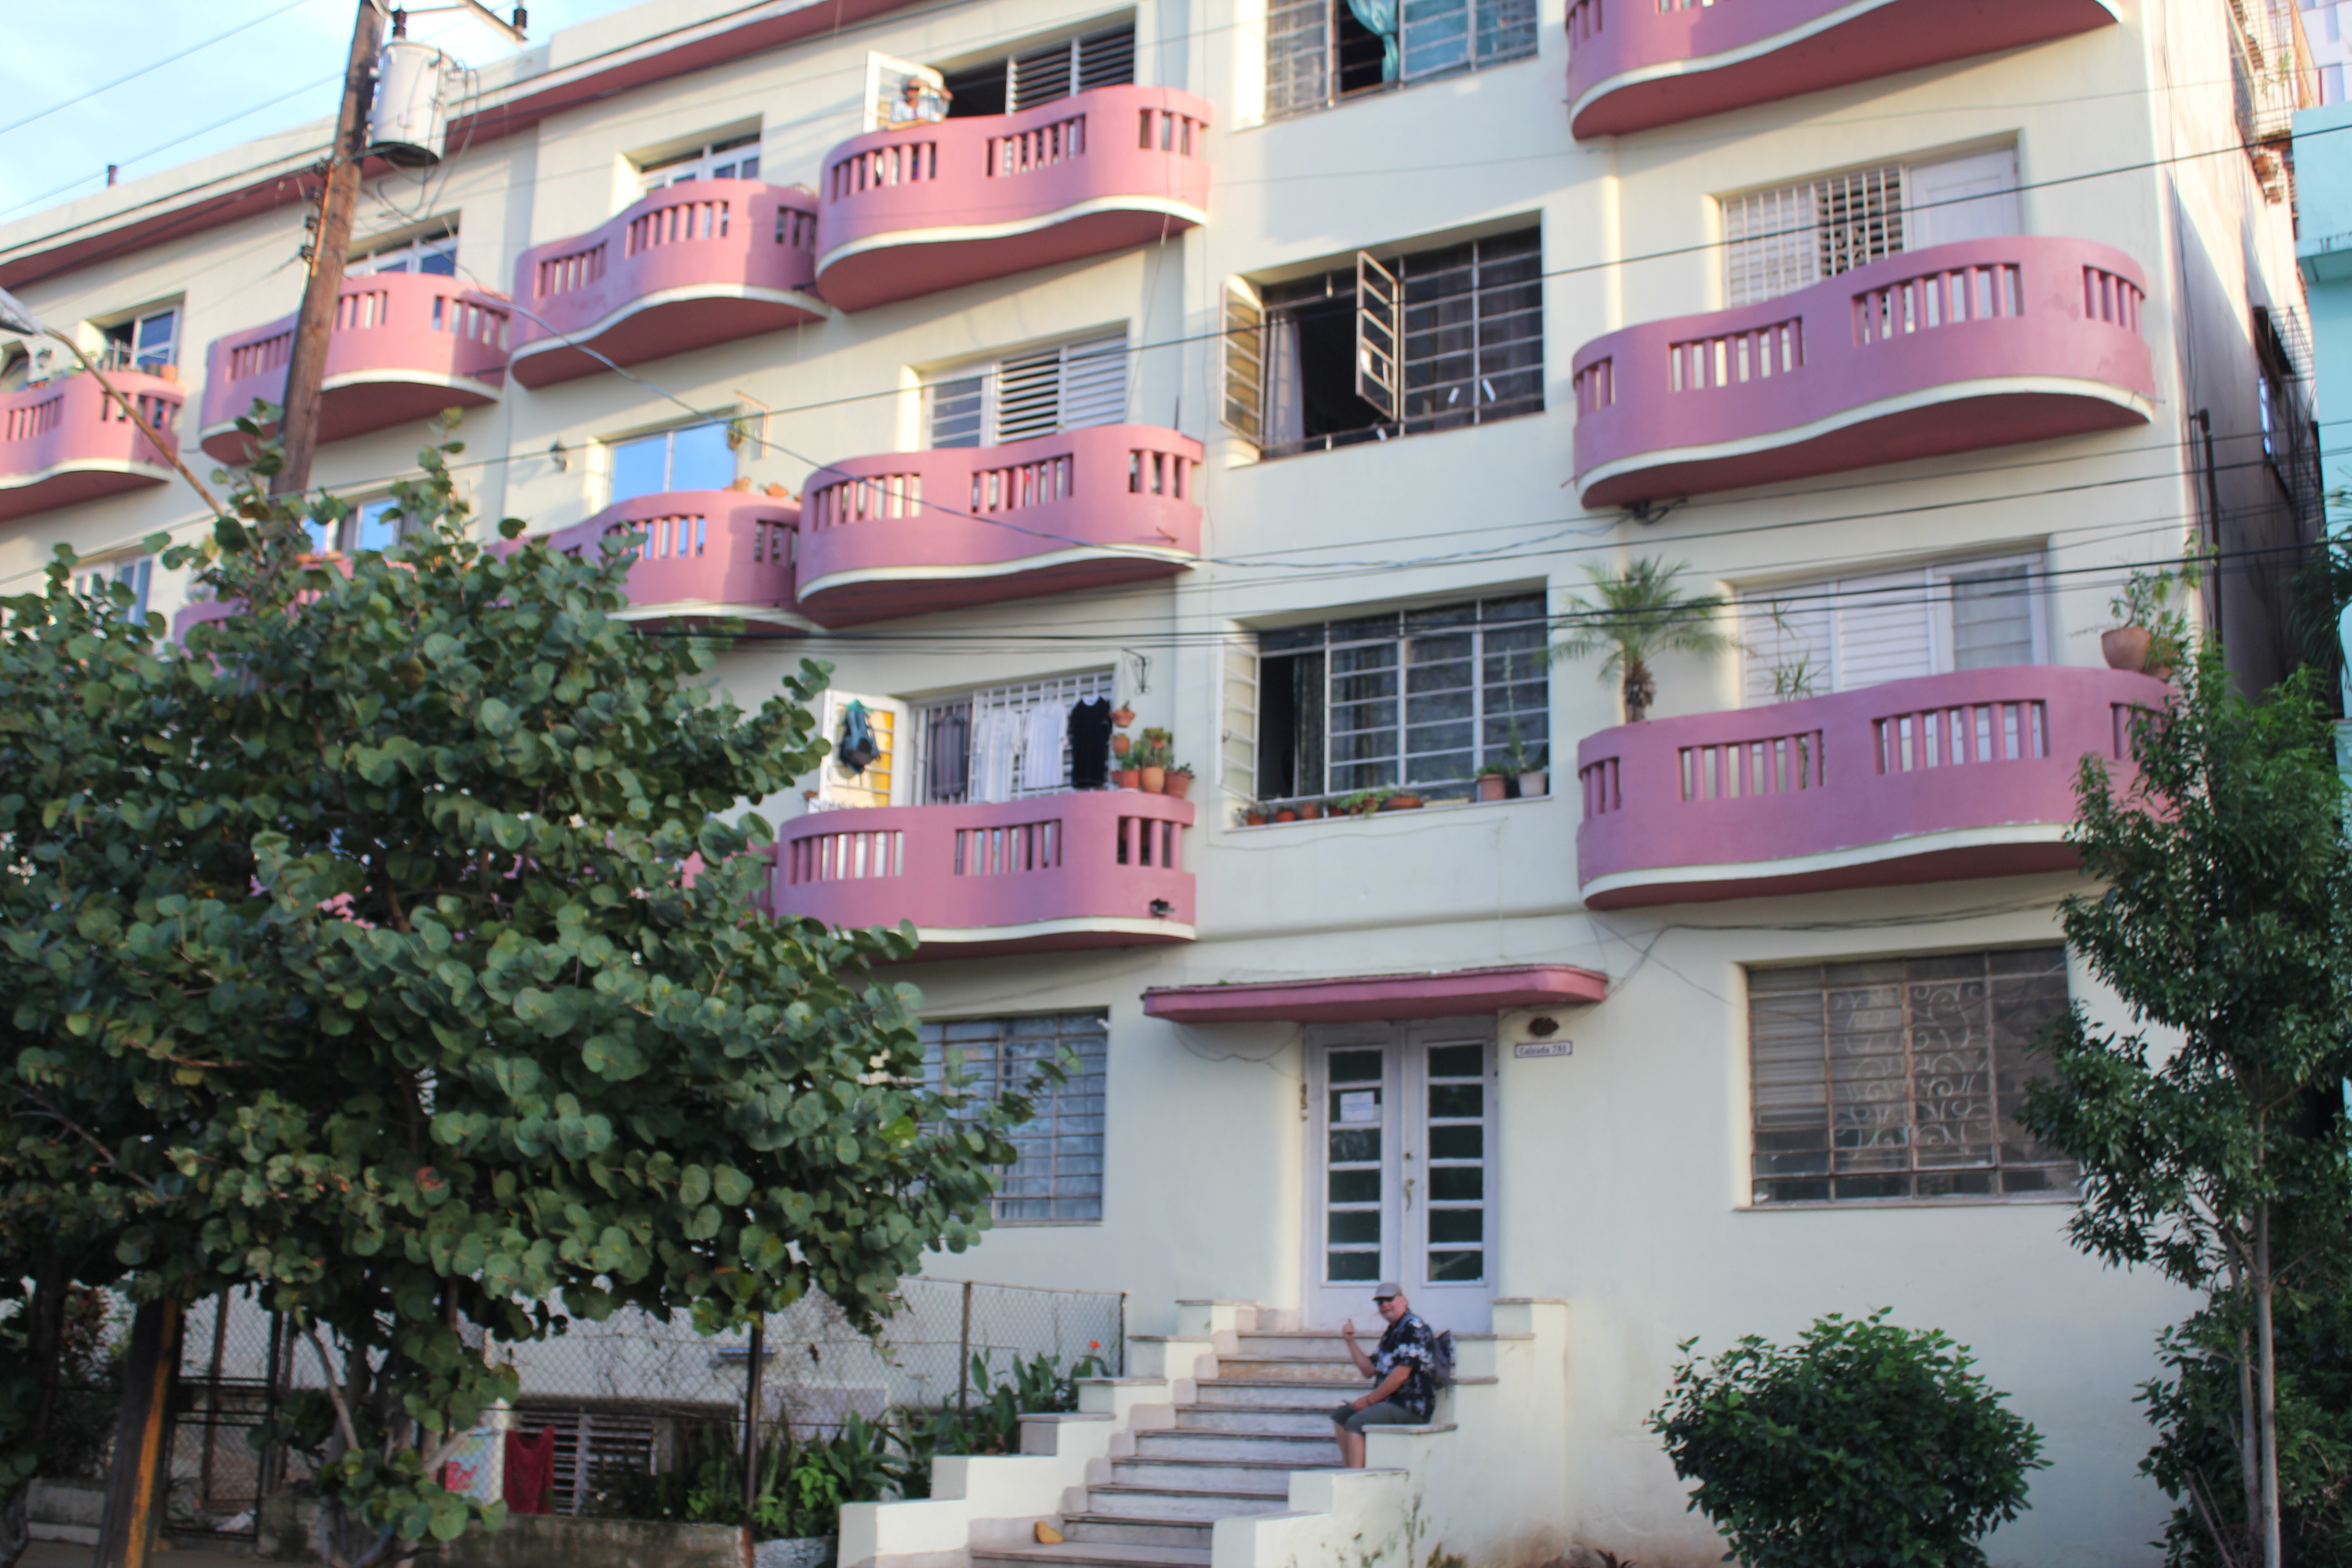 havana-apartment-building1 So, you want to go to Cuba? Here are some pointers. Cuba